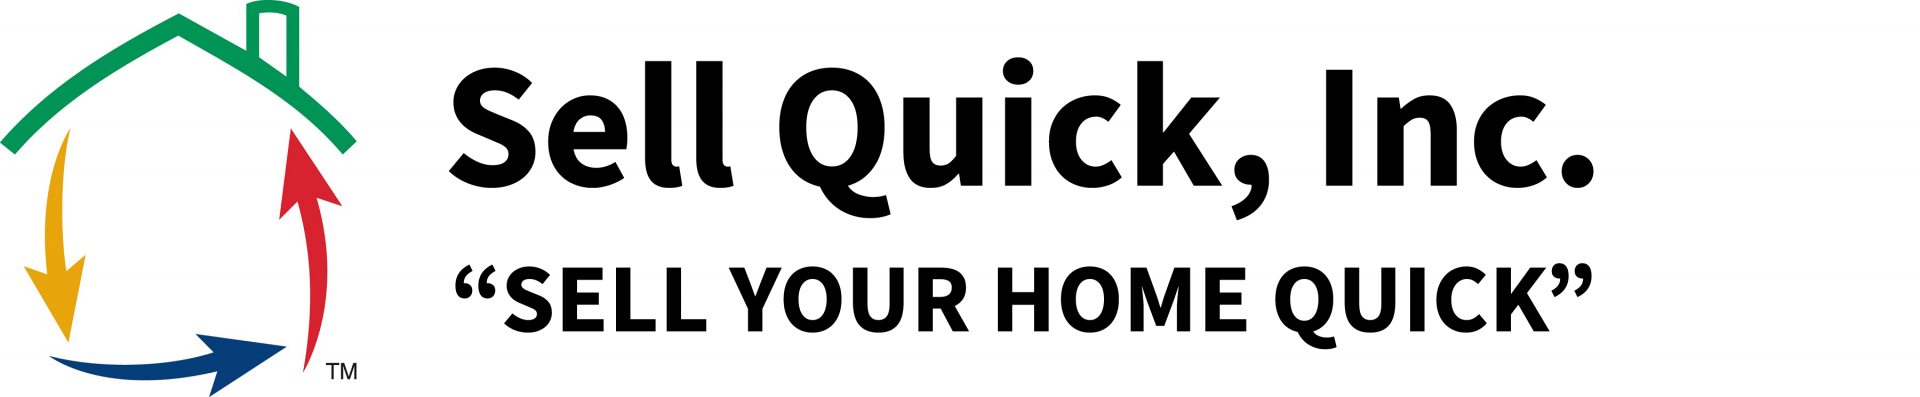 Sell Quick, Inc. logo